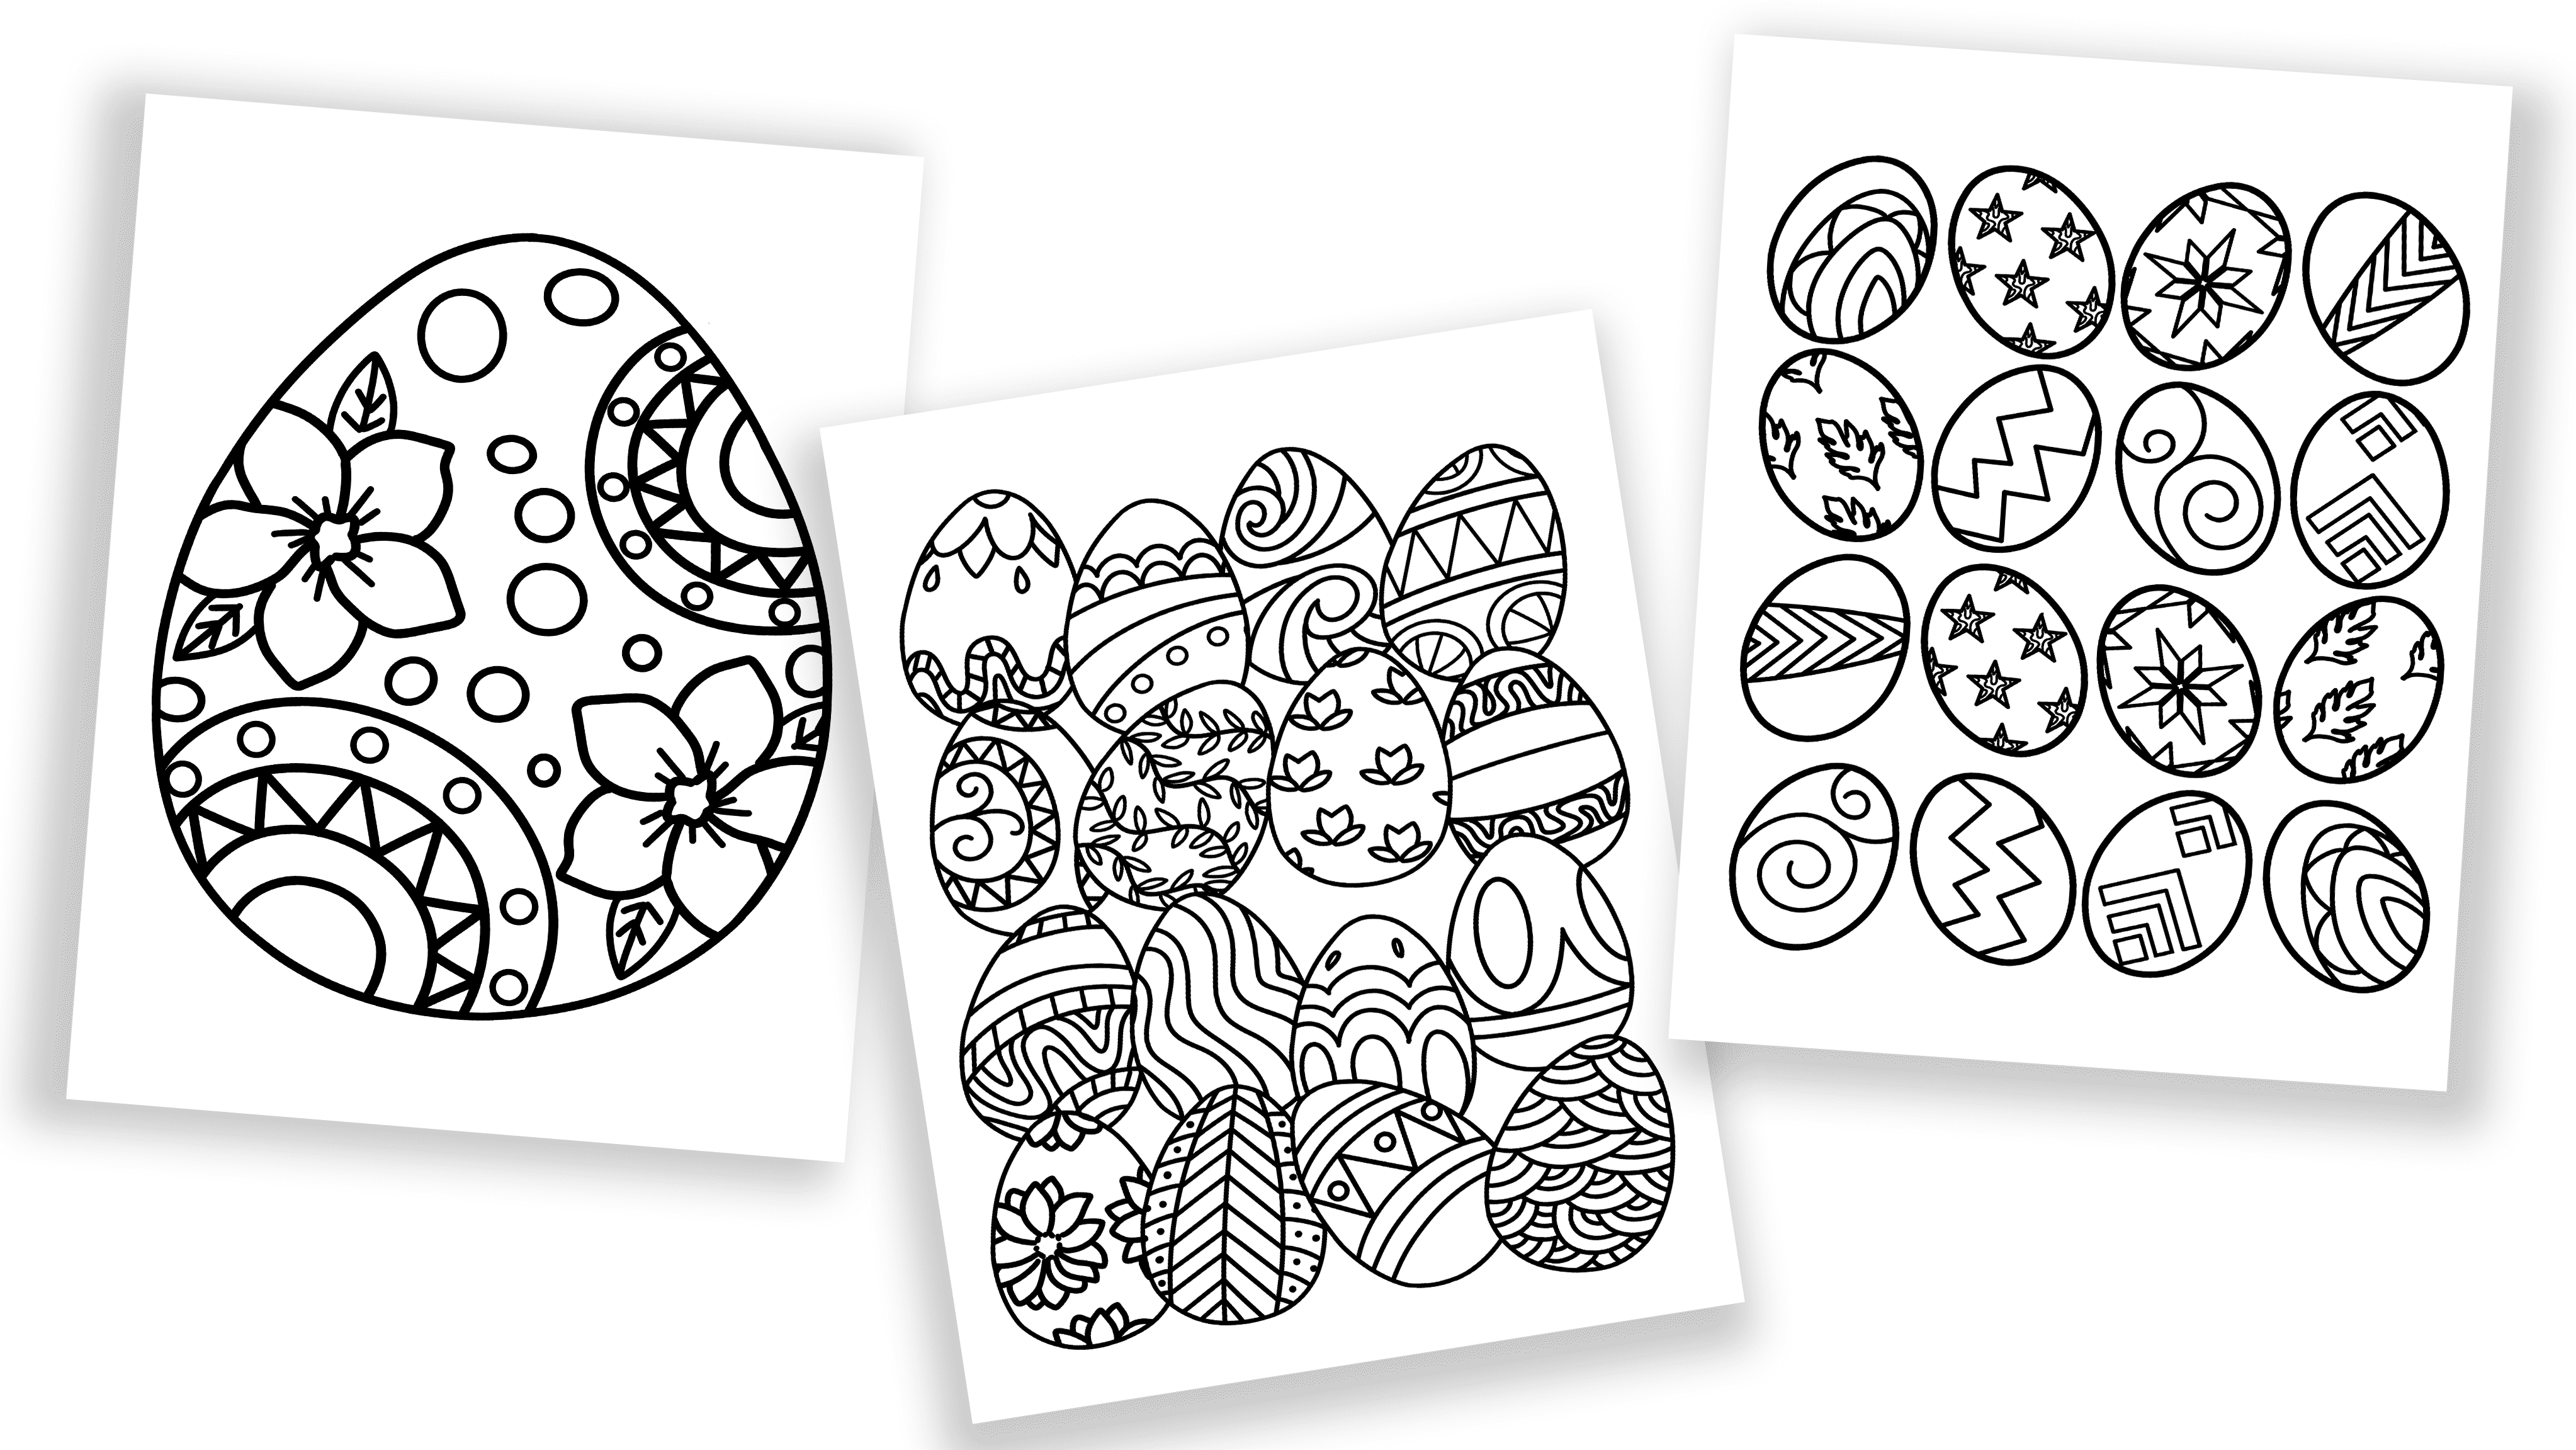 Does your kid need more spring coloring pages? Download these free printable Easter egg coloring pages!